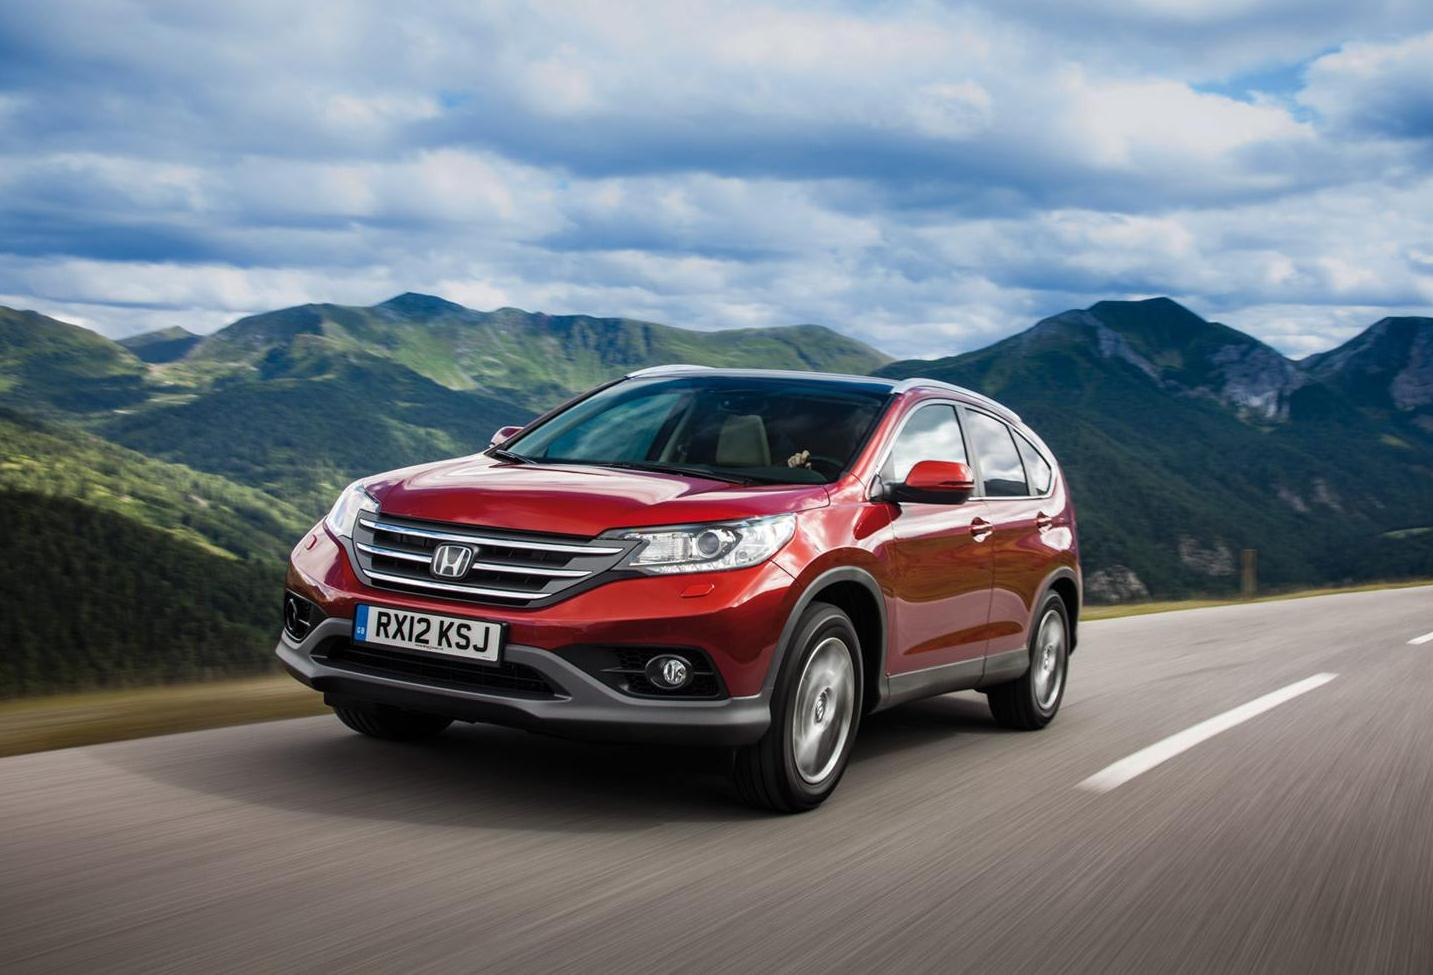 New Honda CRV Price and Lease Options - Best SUV Lease Deals 2020